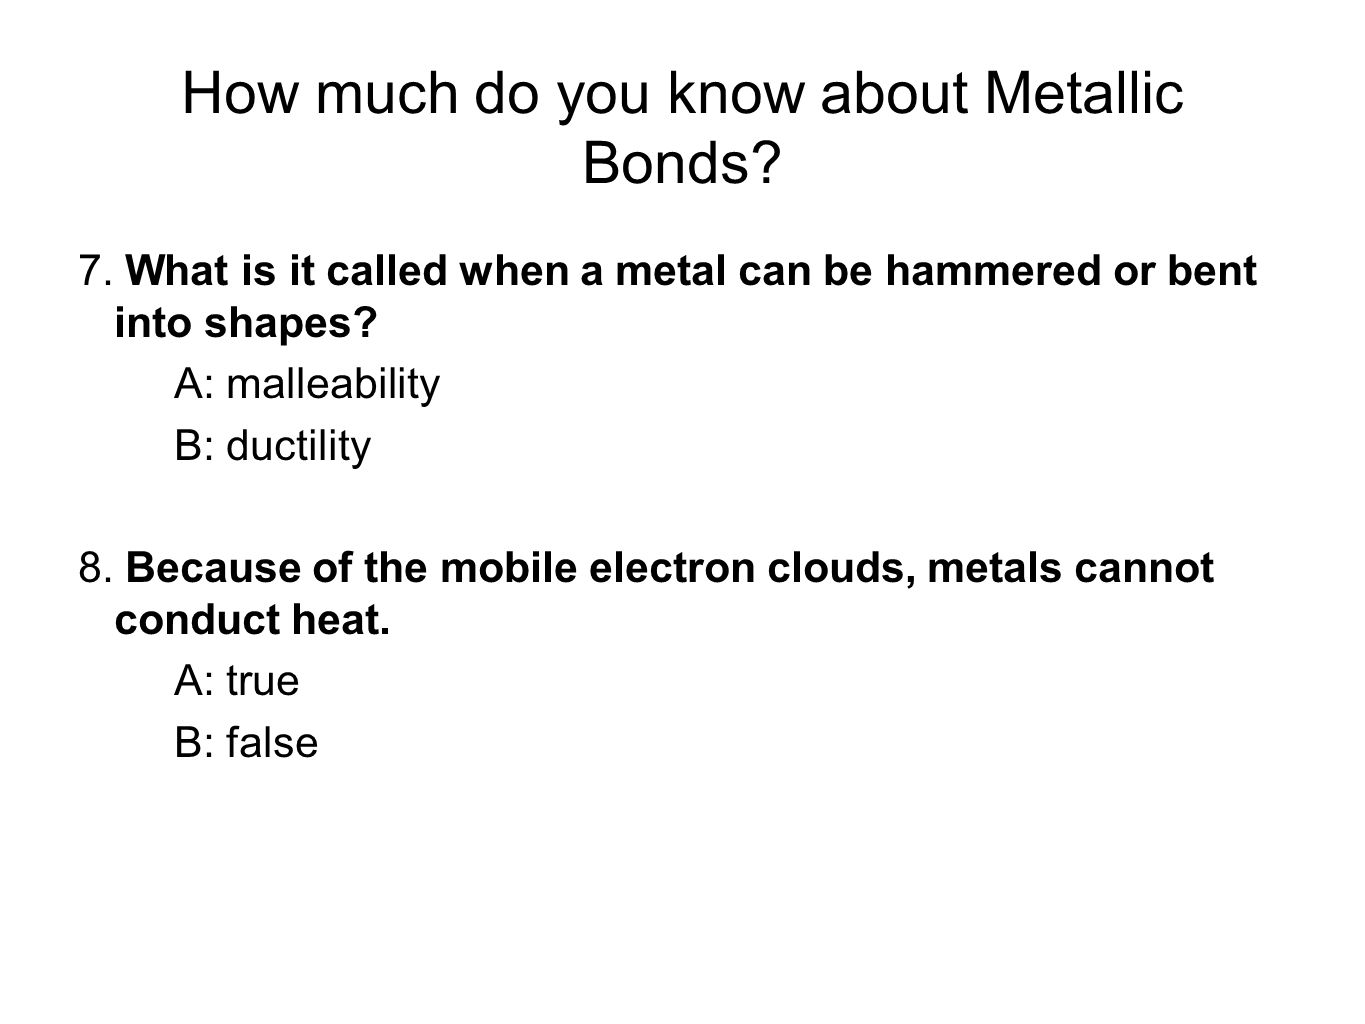 How much do you know about Metallic Bonds? 7. What is it called when a metal can be hammered or bent into shapes? A: malleability B: ductility 8. Beca